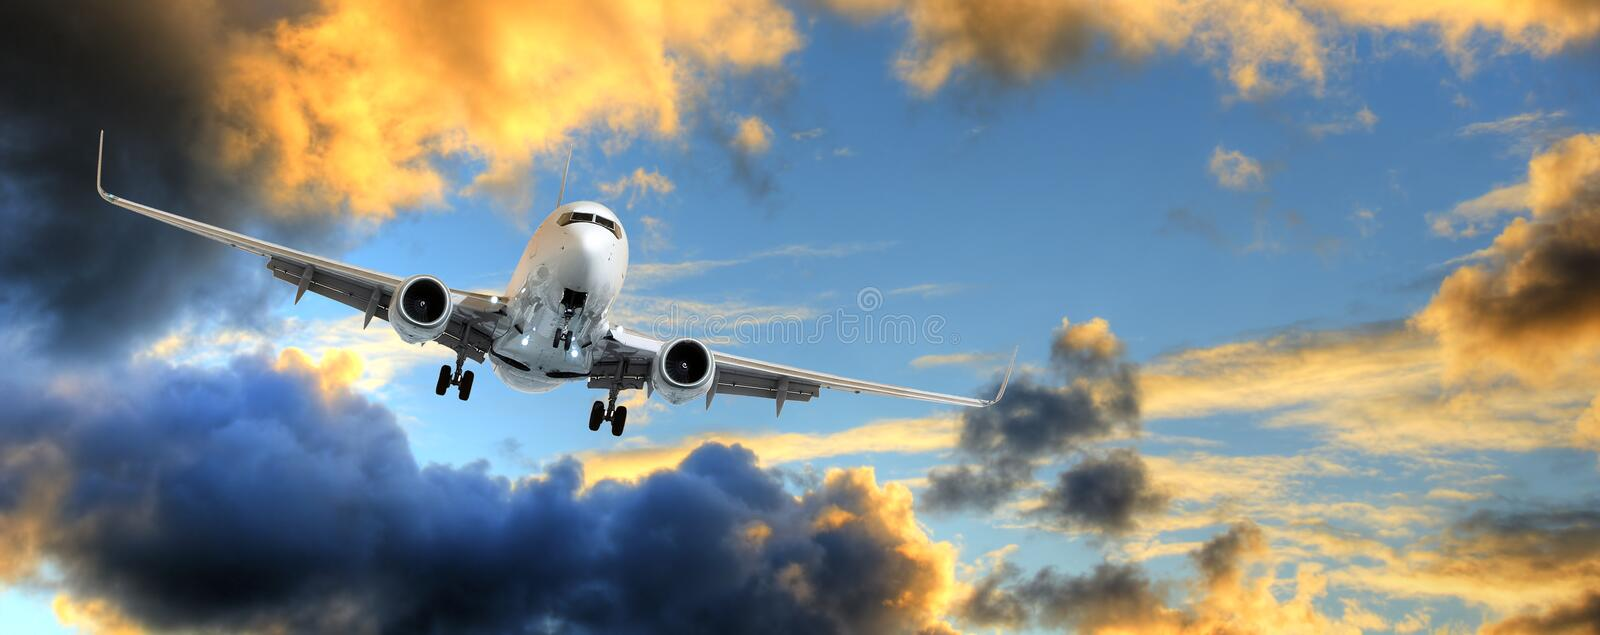 Panorama of airplane in sunset sky stock image